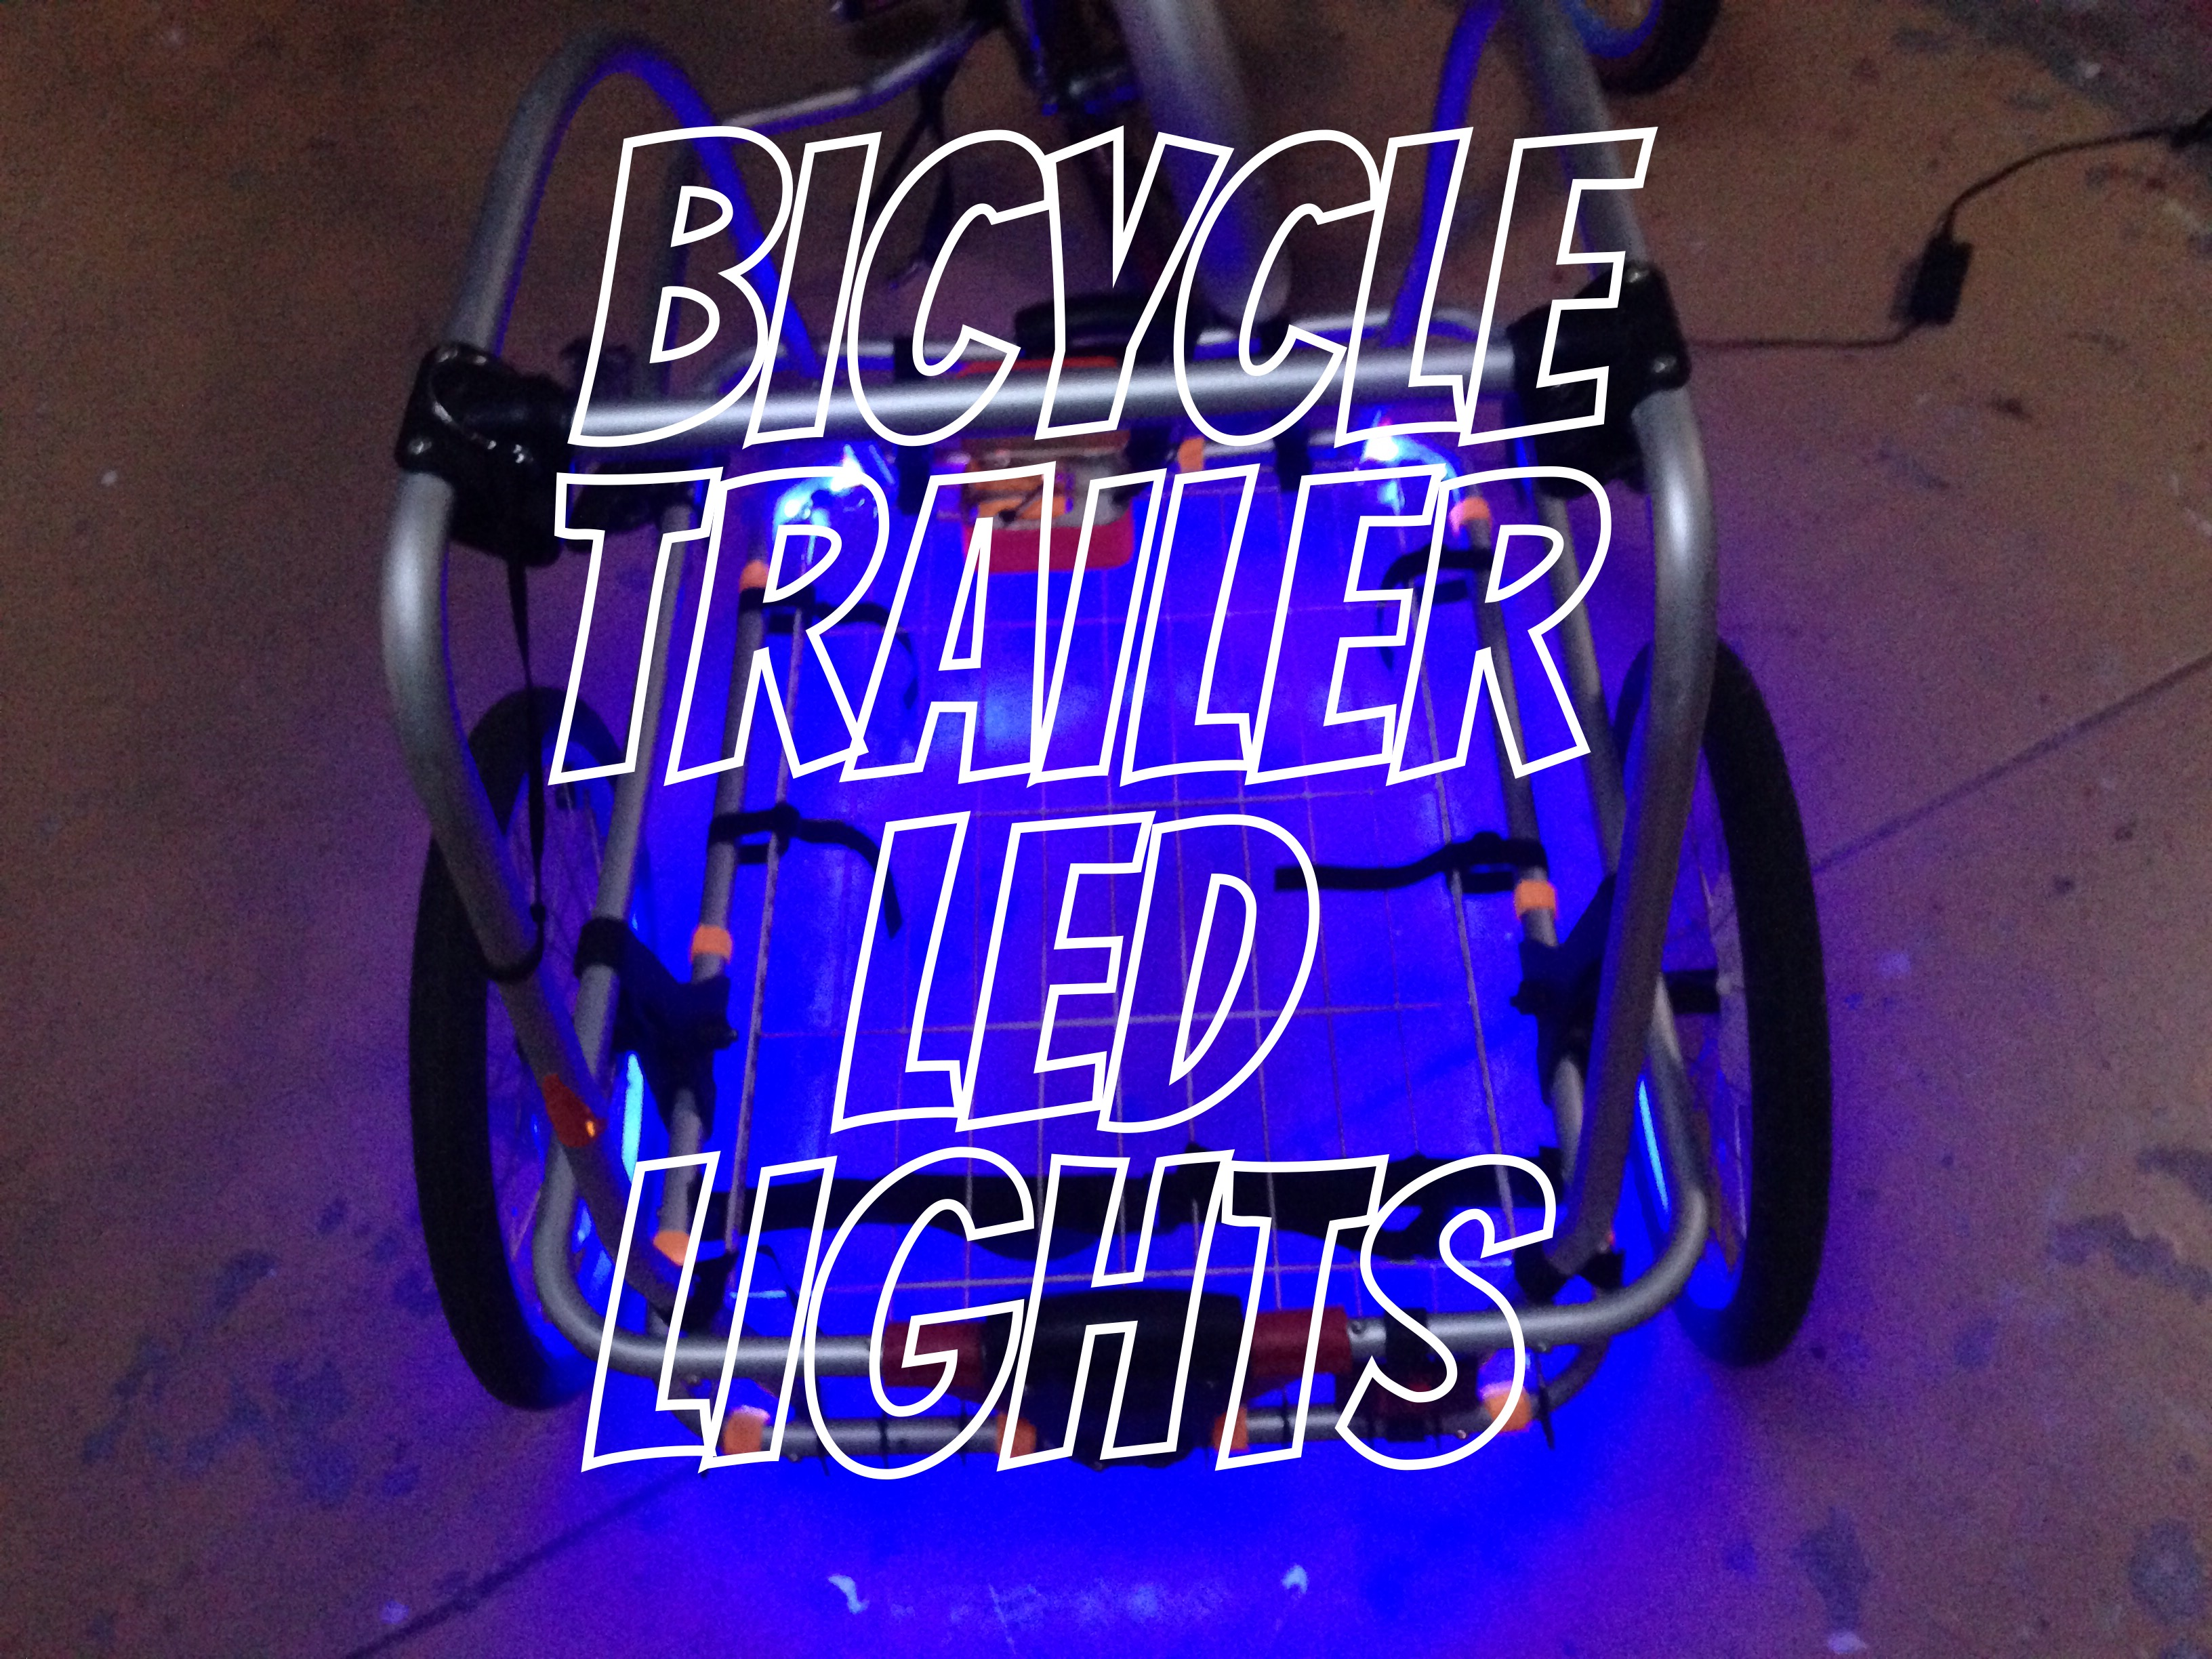 Picture of Bicycle Trailer LED Lights